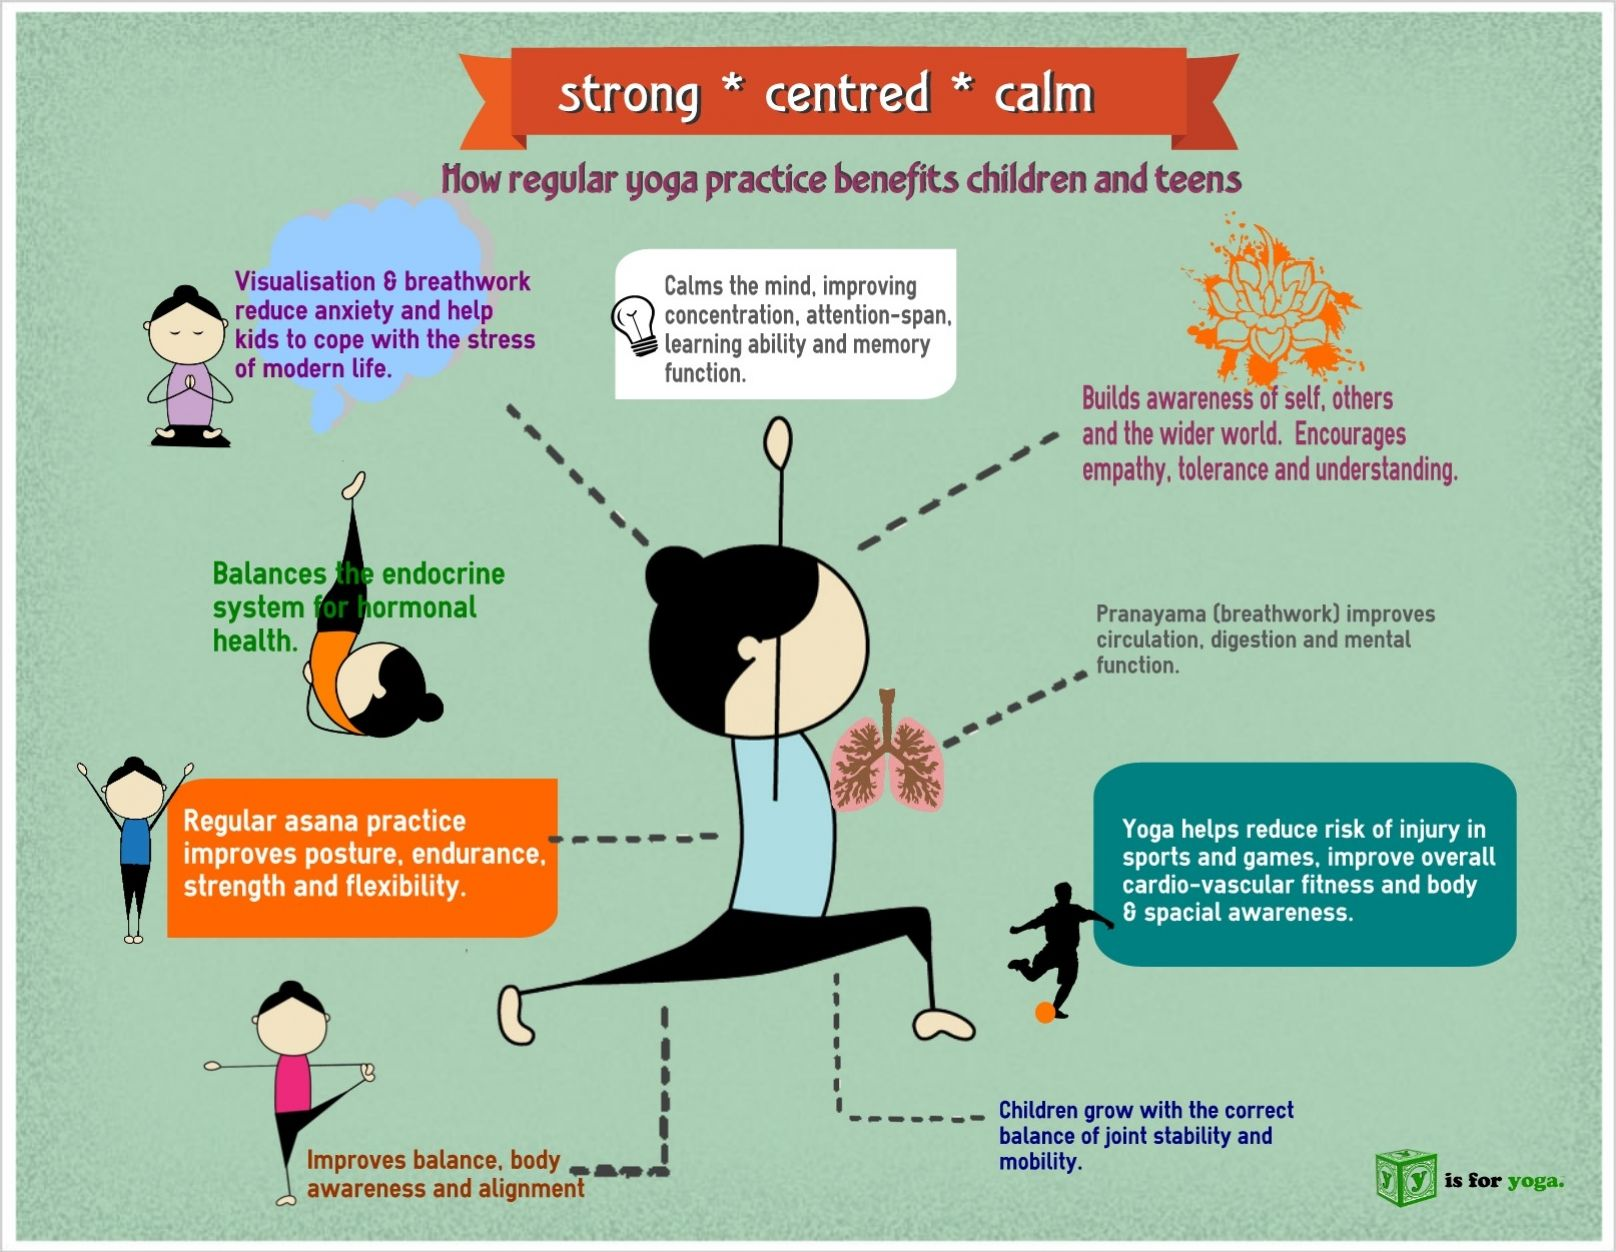 Strong Centered Calm Why Yoga Is Good For Children And Teens Tlcforkids